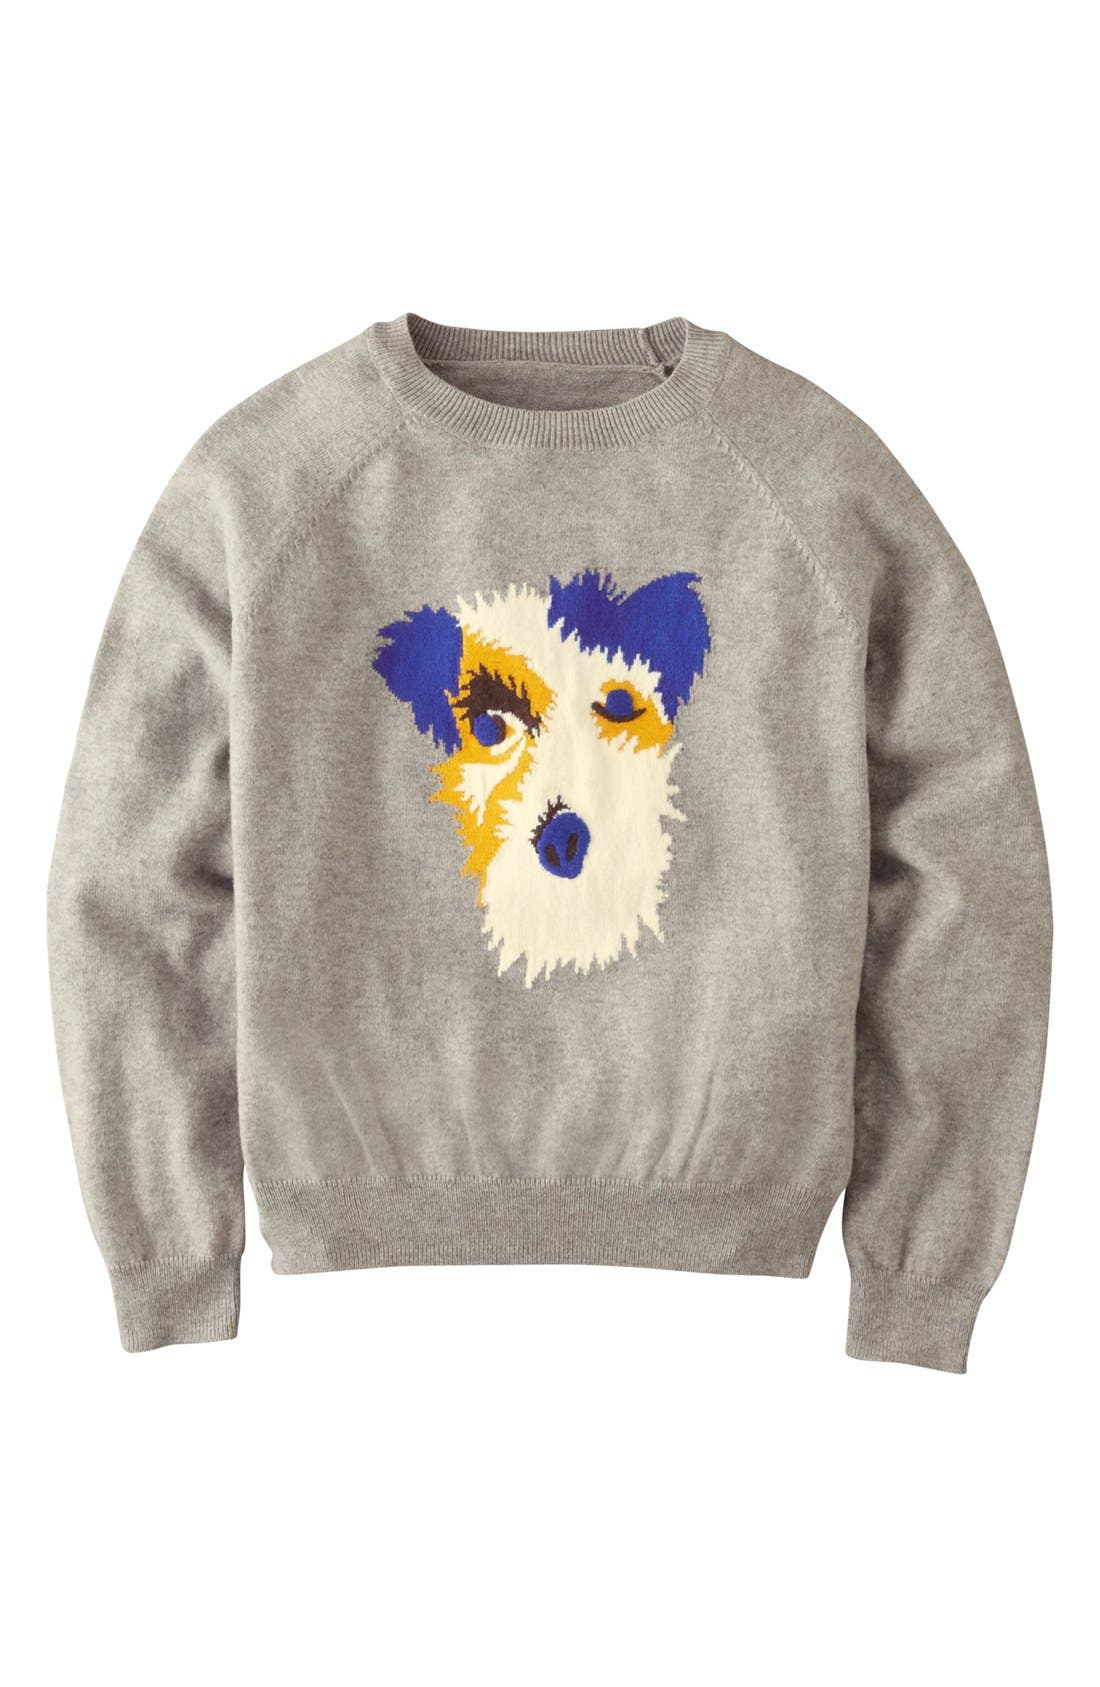 Alternate Image 1 Selected - Mini Boden Graphic Sweater (Toddler Boys)